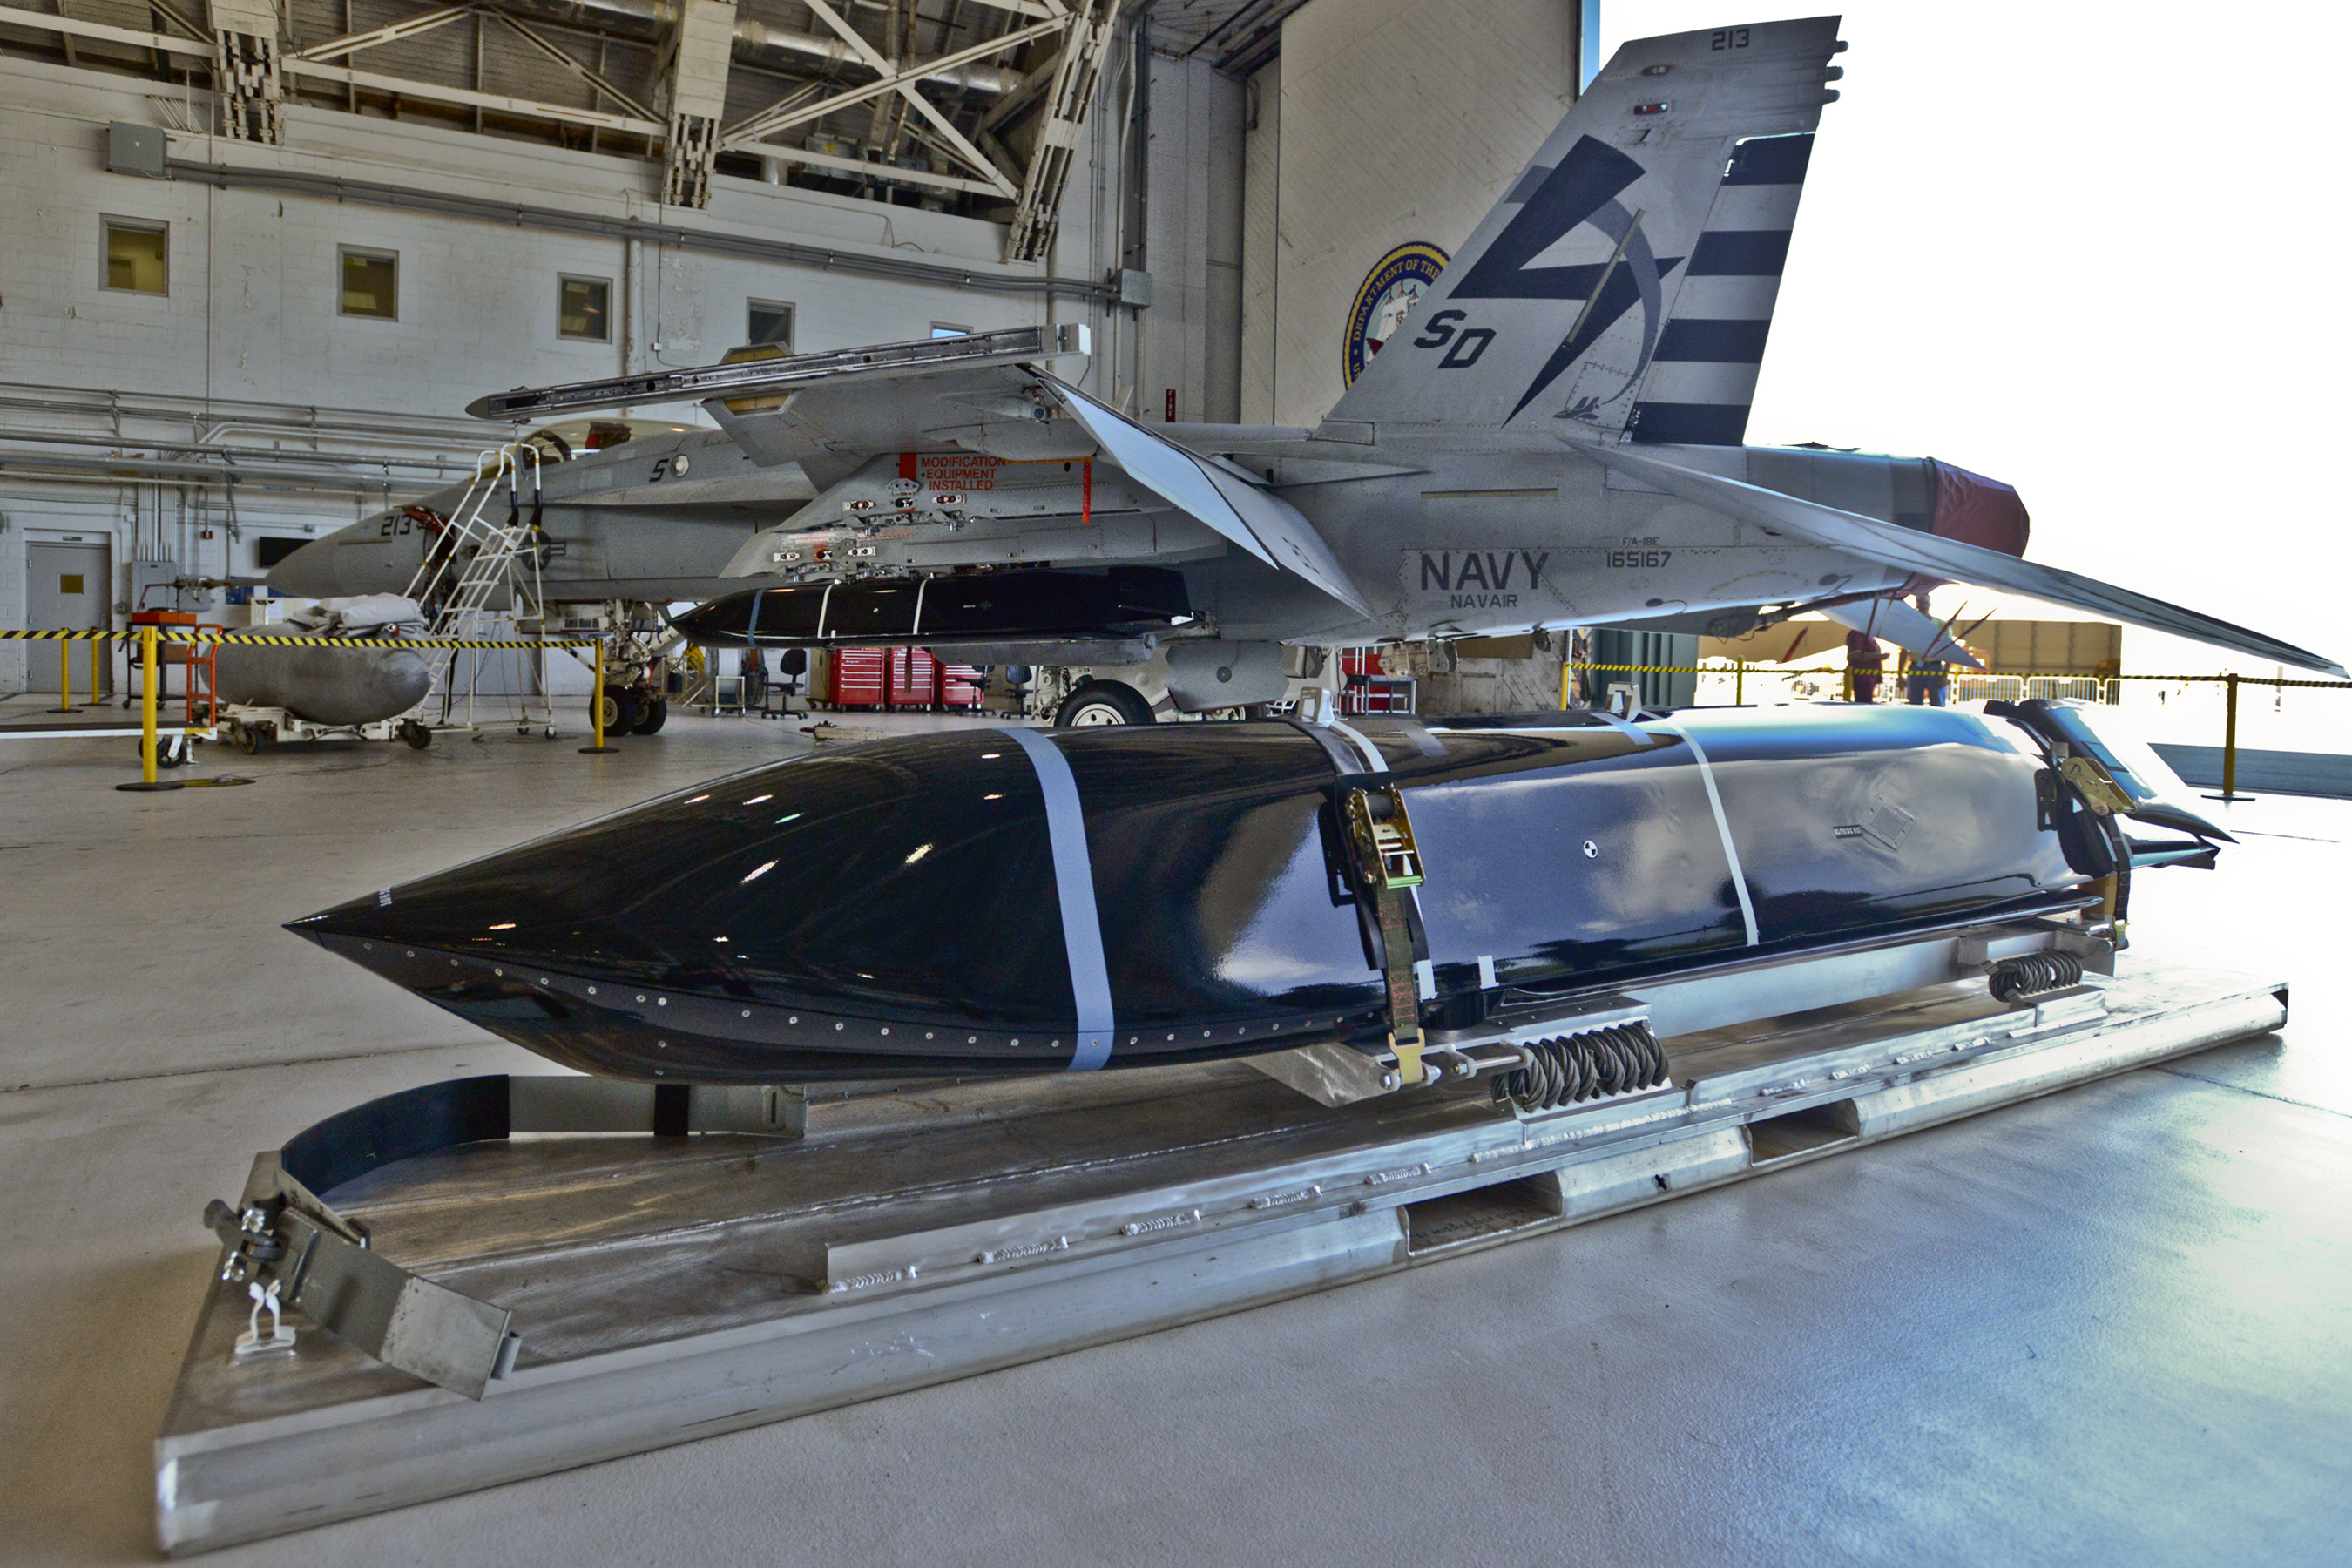 A LRASM missile in a hangar with a F/A-18E Super Hornet. Lockheed Martin Photo